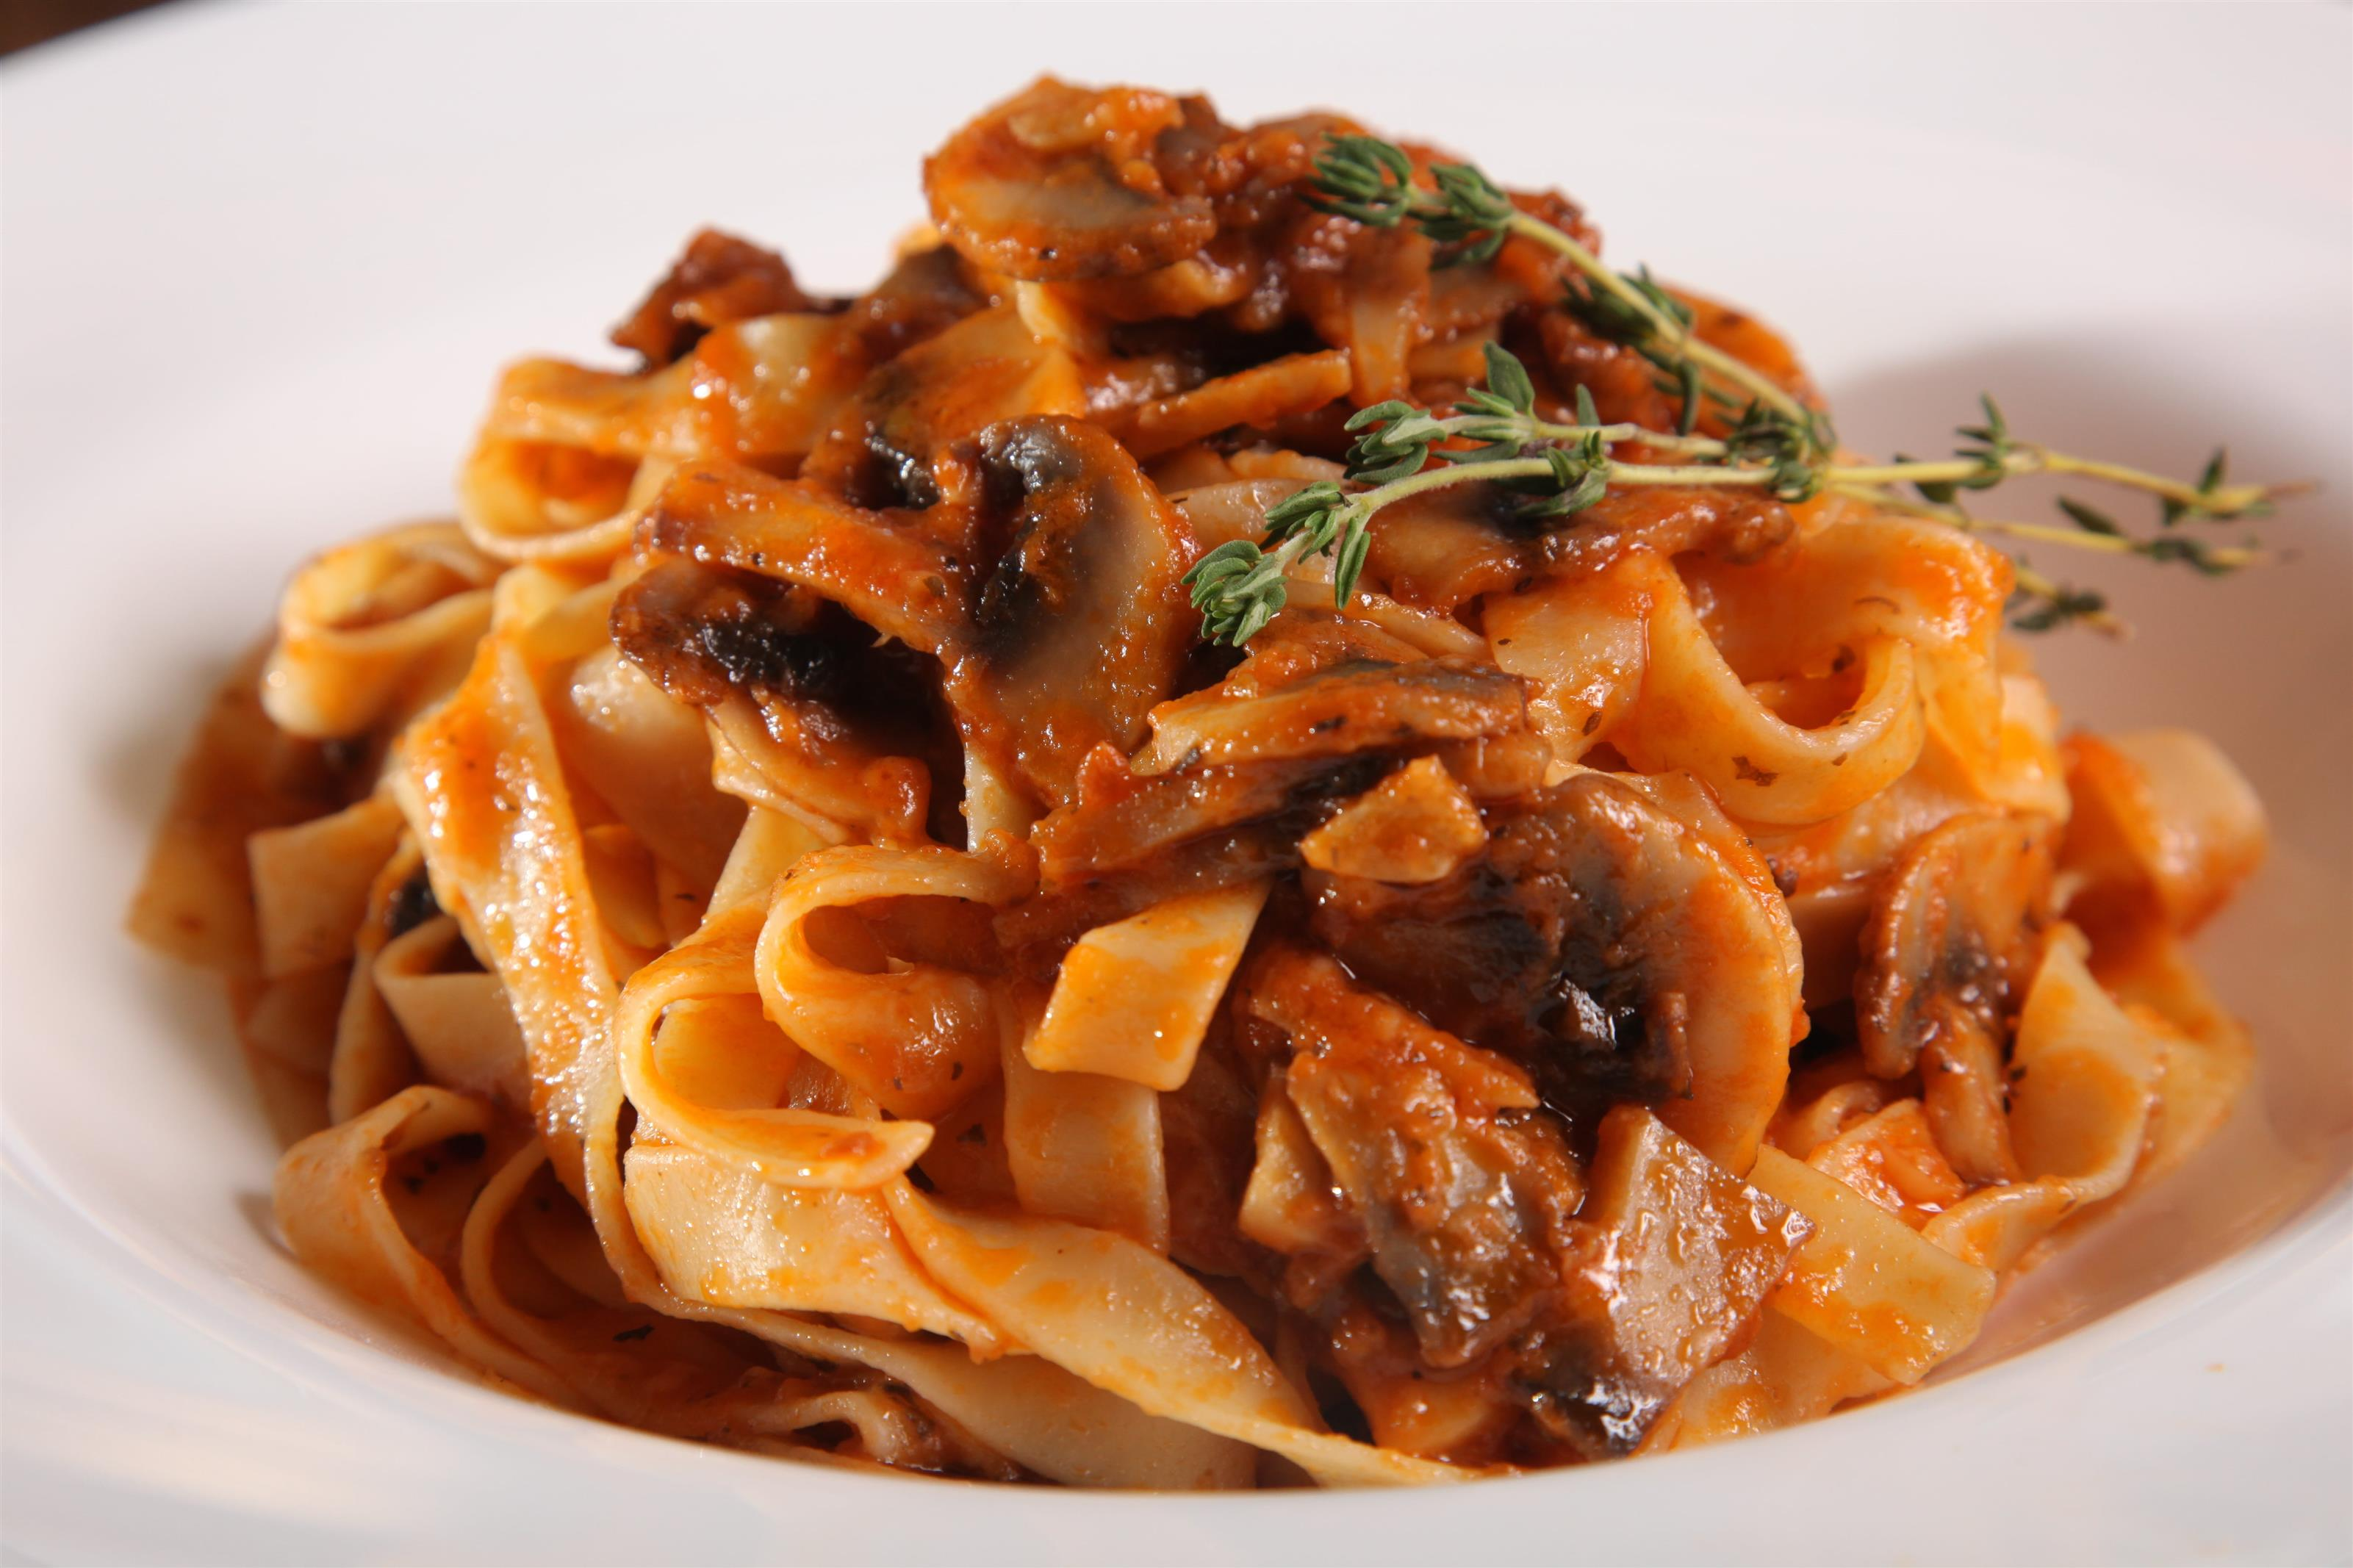 Fettuccine with red sauce and mushrooms in white dish.